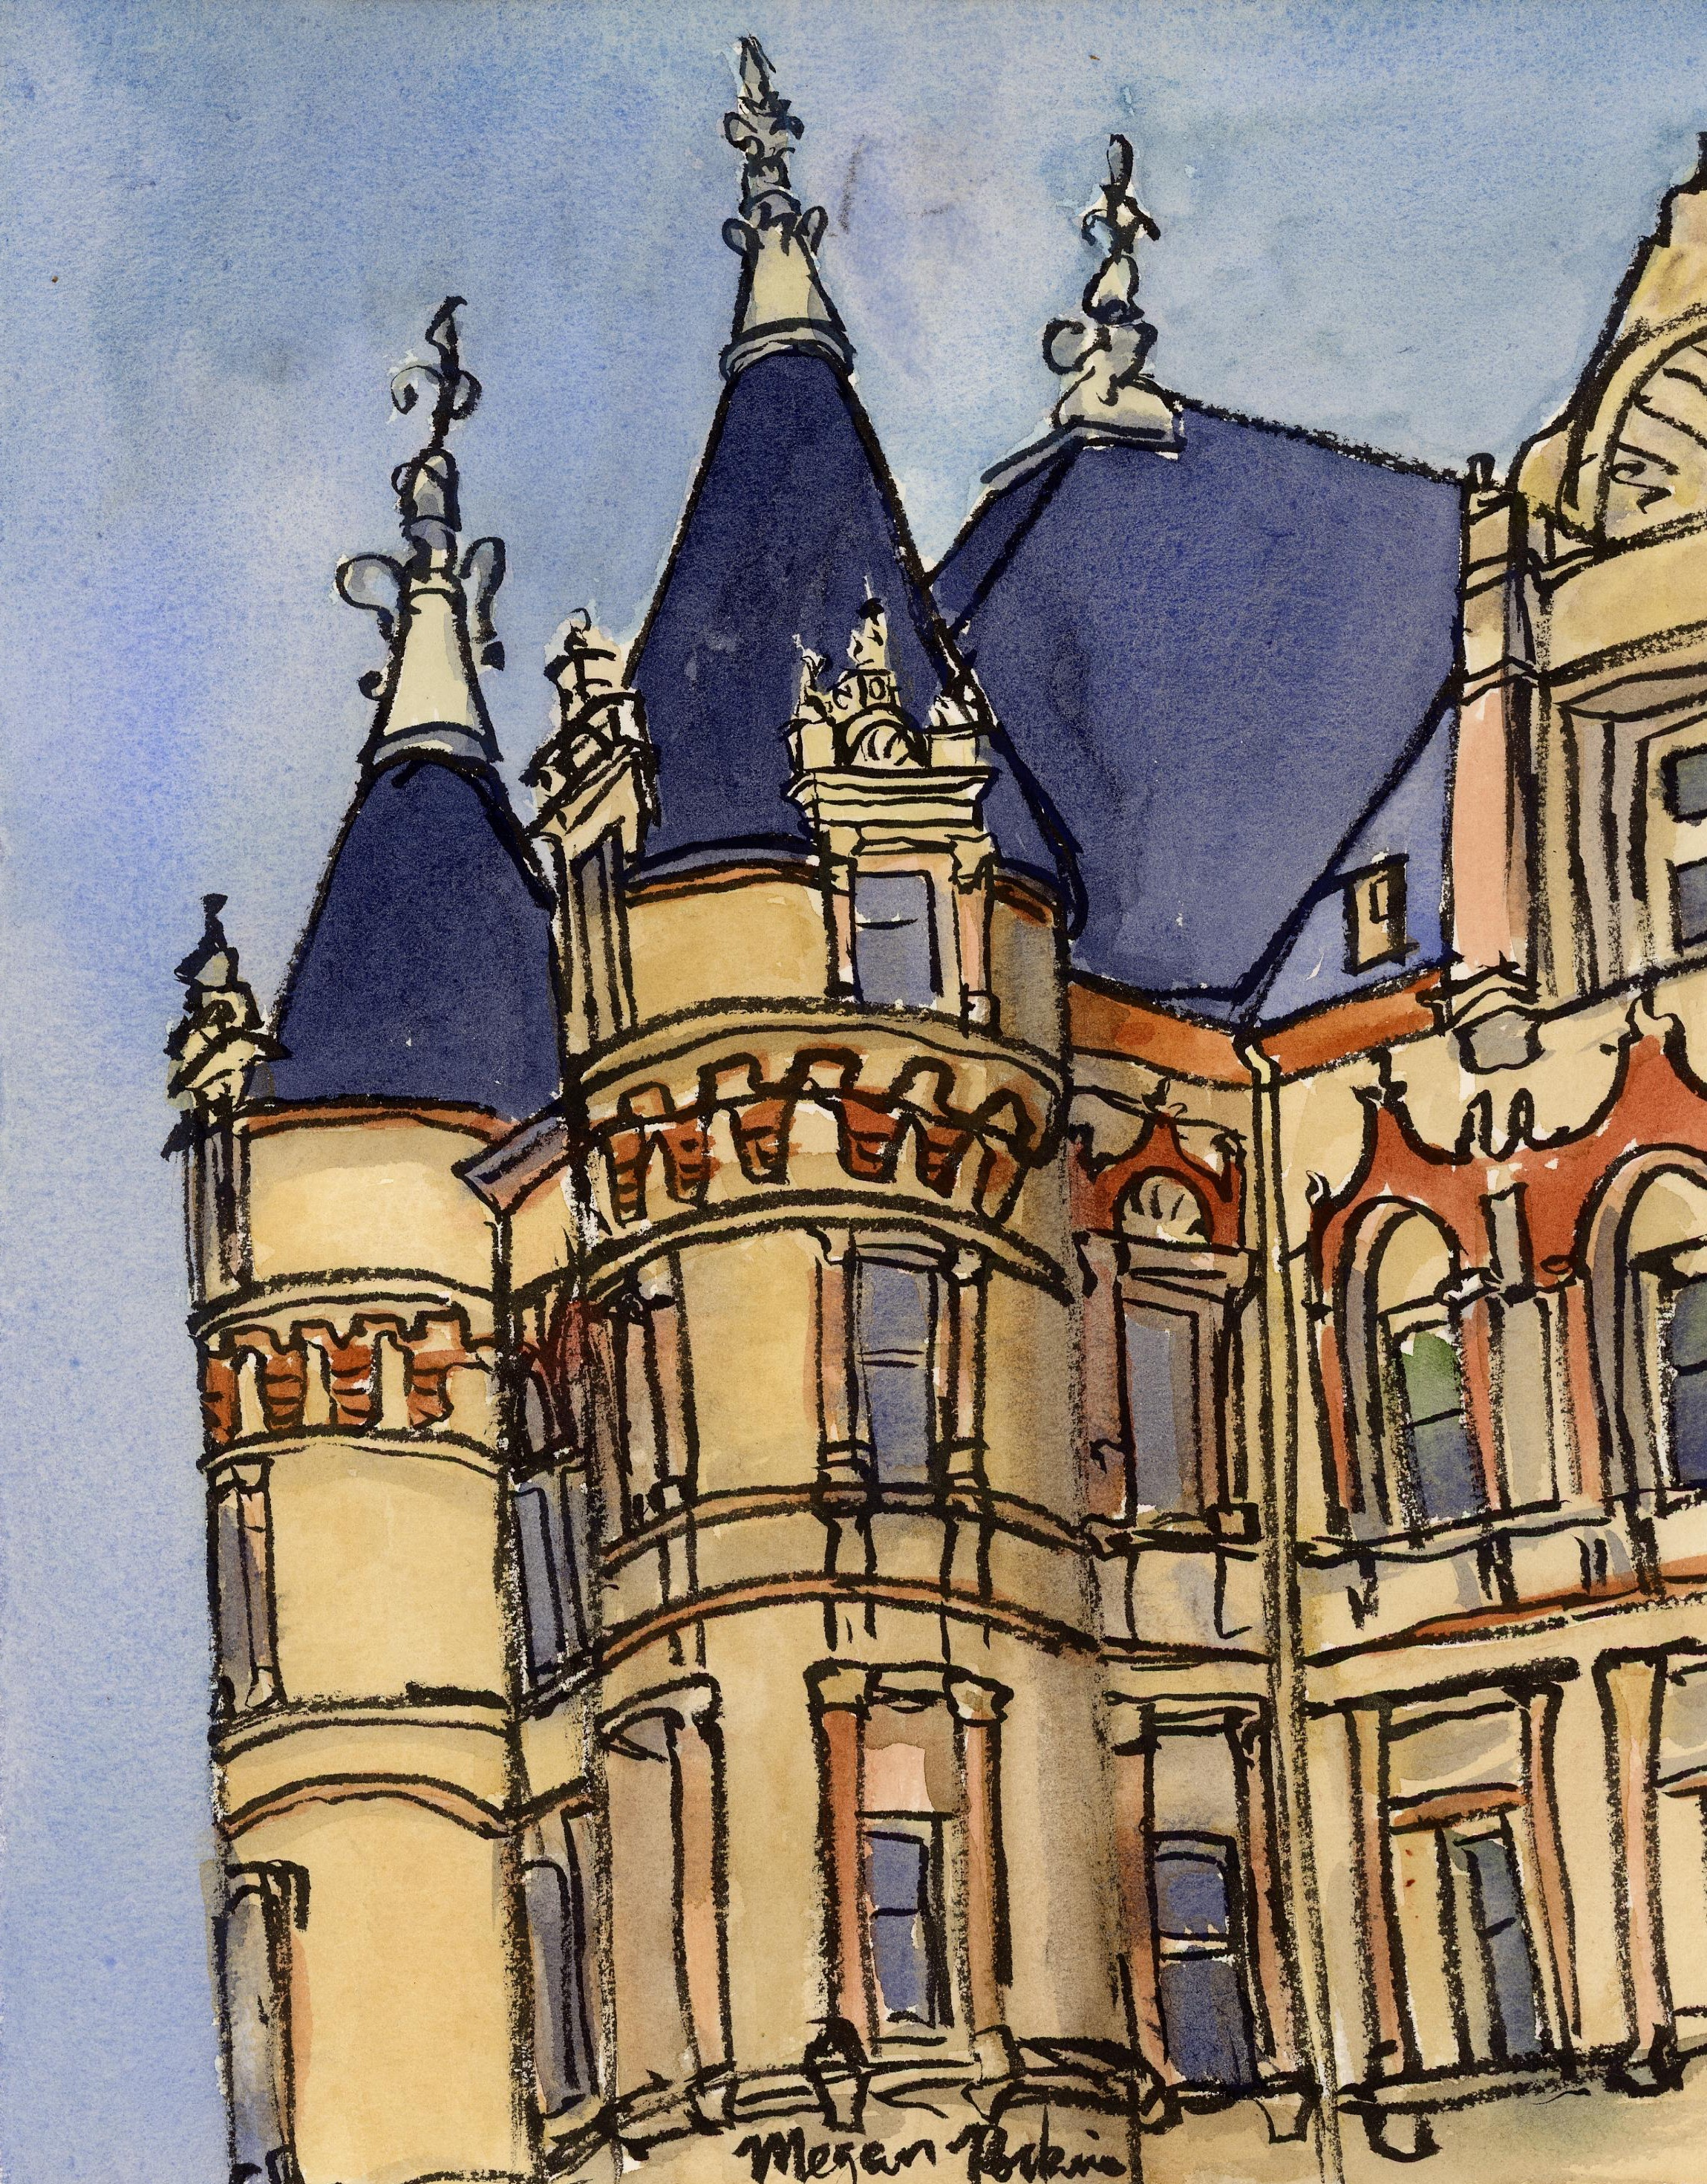 The magical castle of paperwork-the Courthouse!